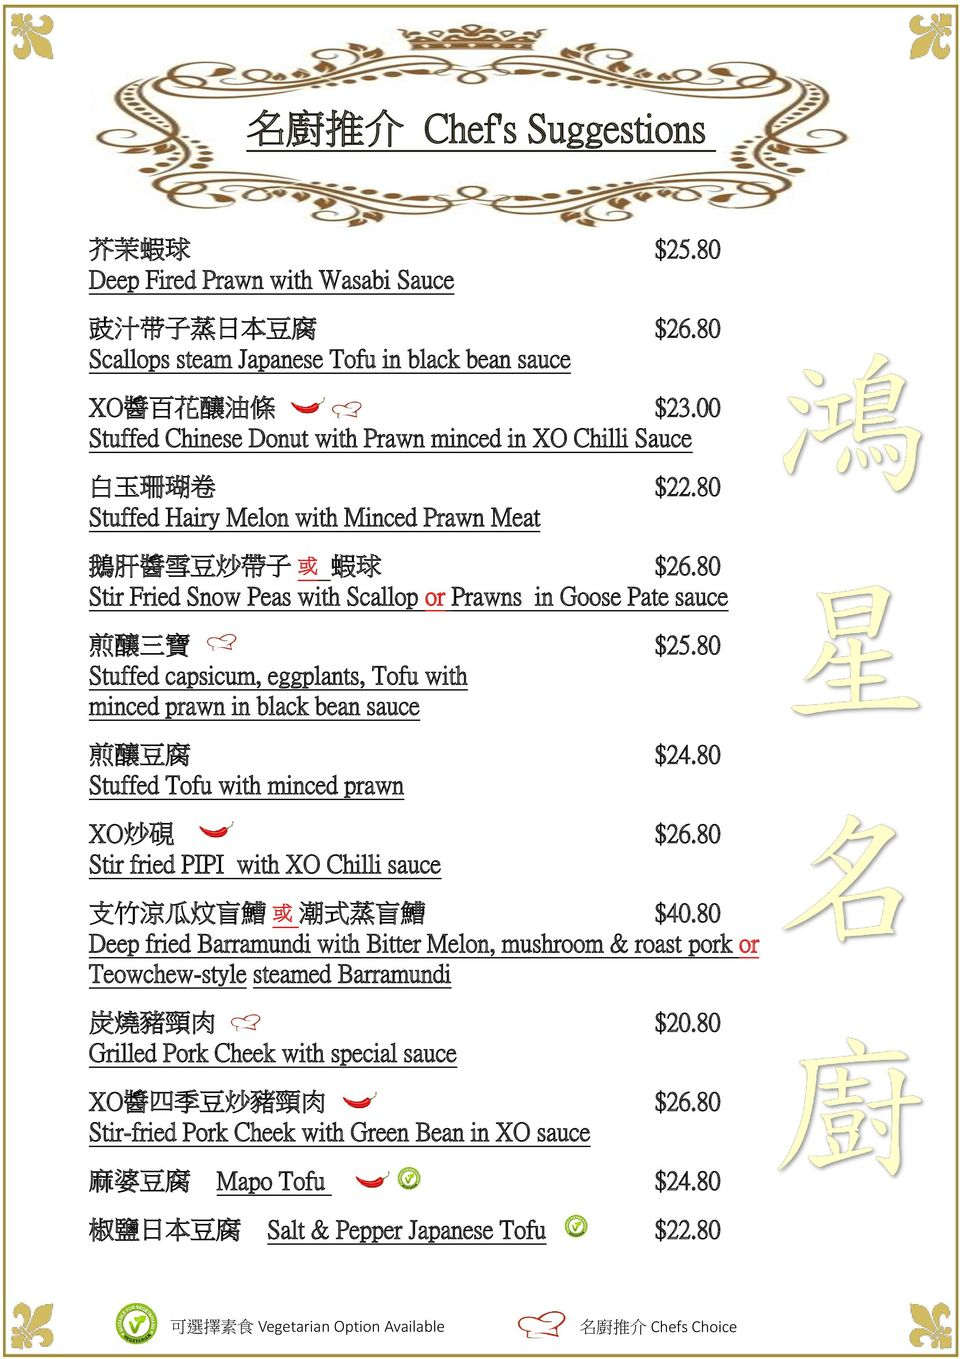 80 Stir Fried Snow Peas with Scallop or Prawns in Goose Pate sauce 煎 釀 三 寶 $25.80 Stuffed capsicum, eggplants, Tofu with minced prawn in black bean sauce 煎 釀 豆 腐 $24.